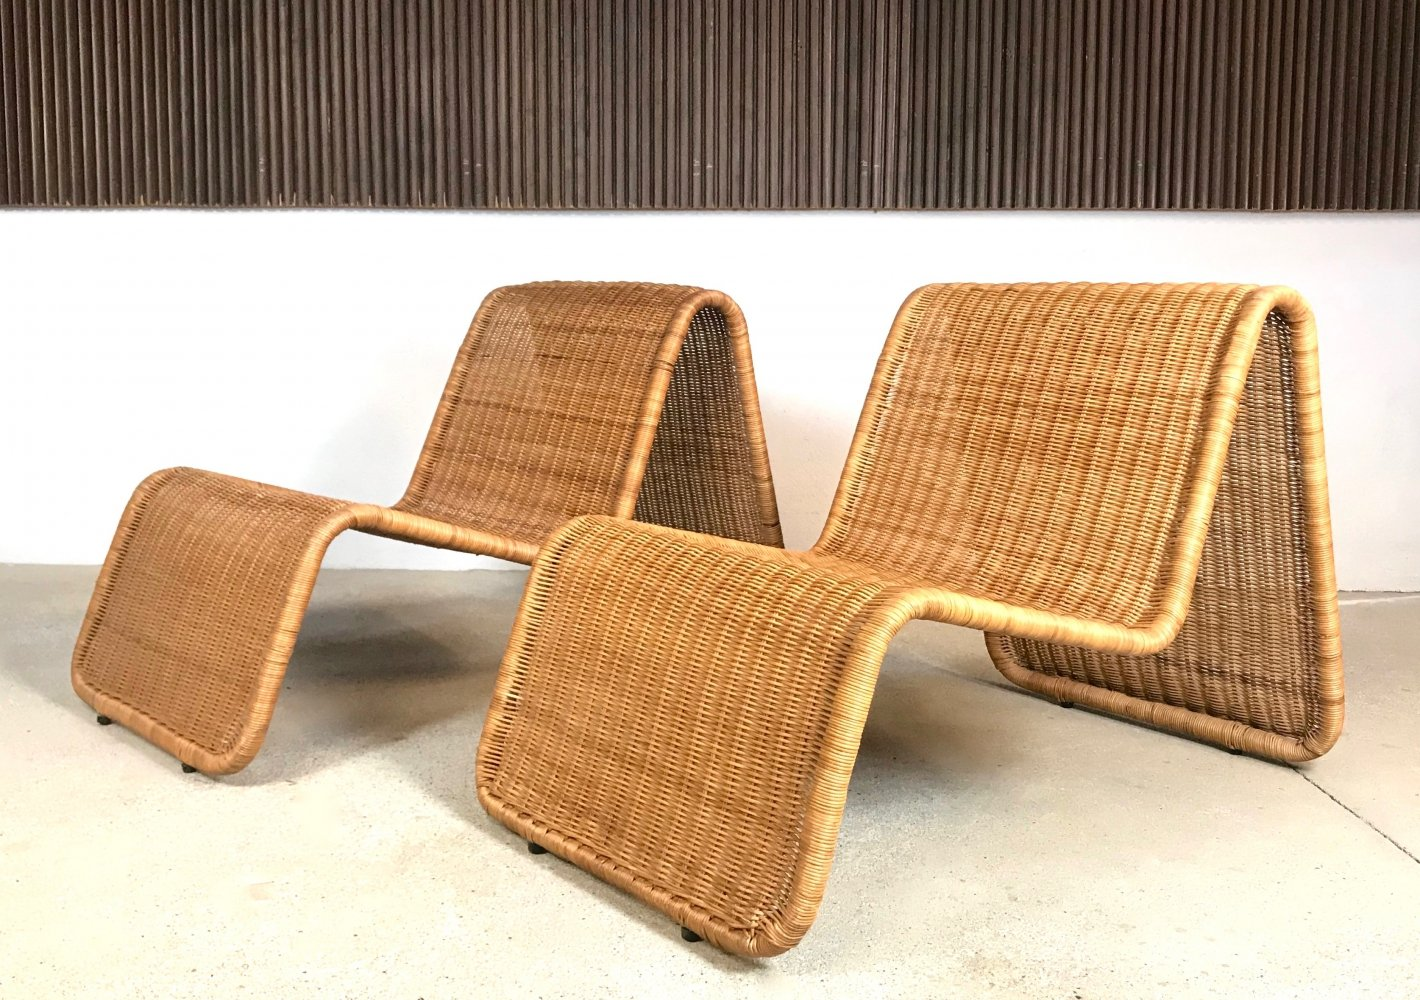 Pair of Vintage Rattan Lounge Chairs by Ikea, 1980s